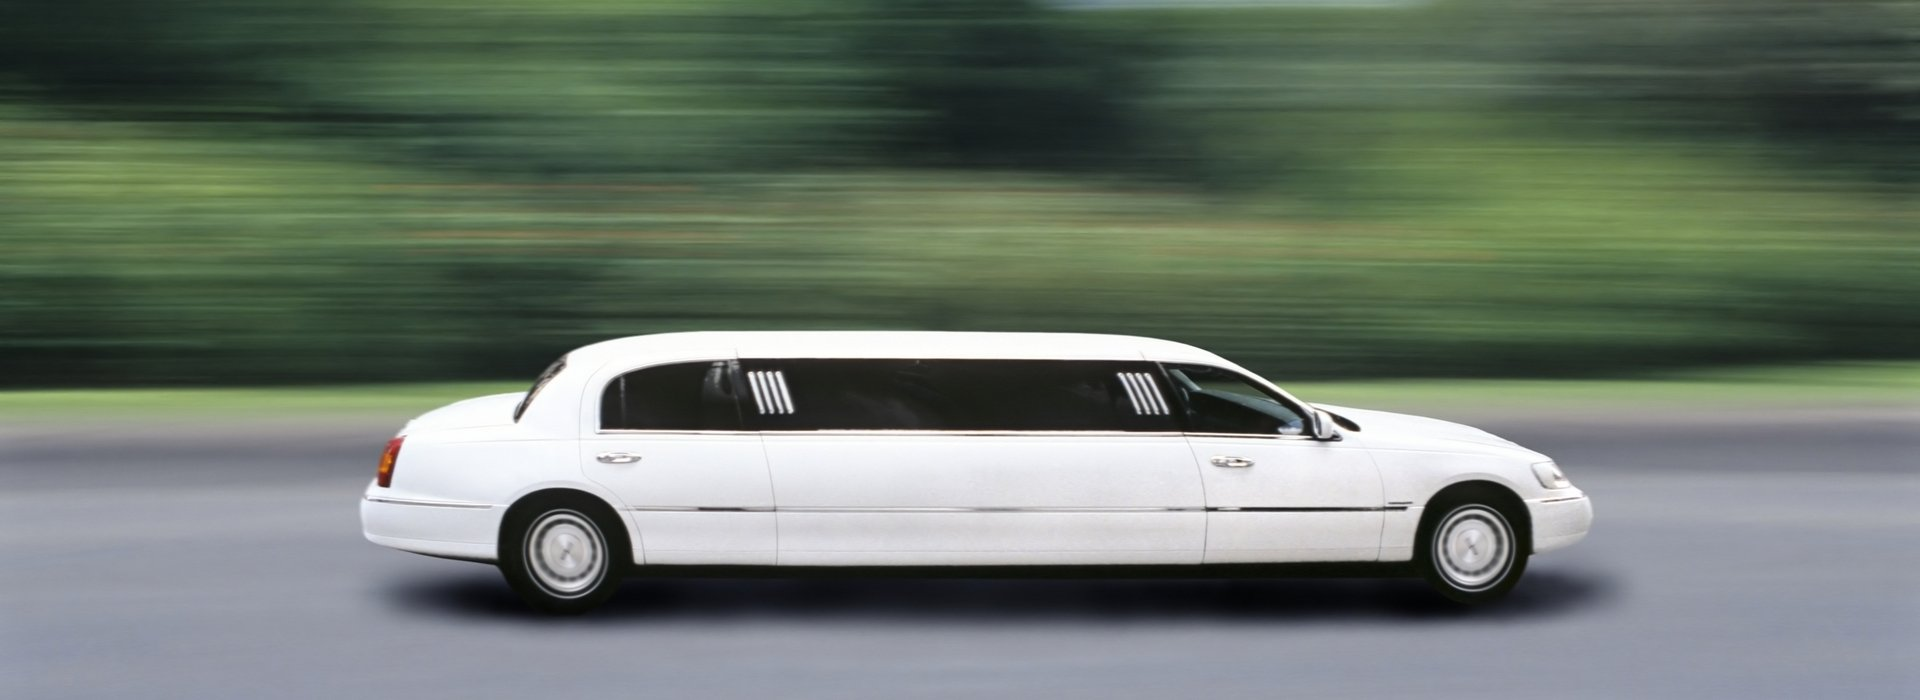 Budapest Wedding limo – Budapest limousine hire for weddings